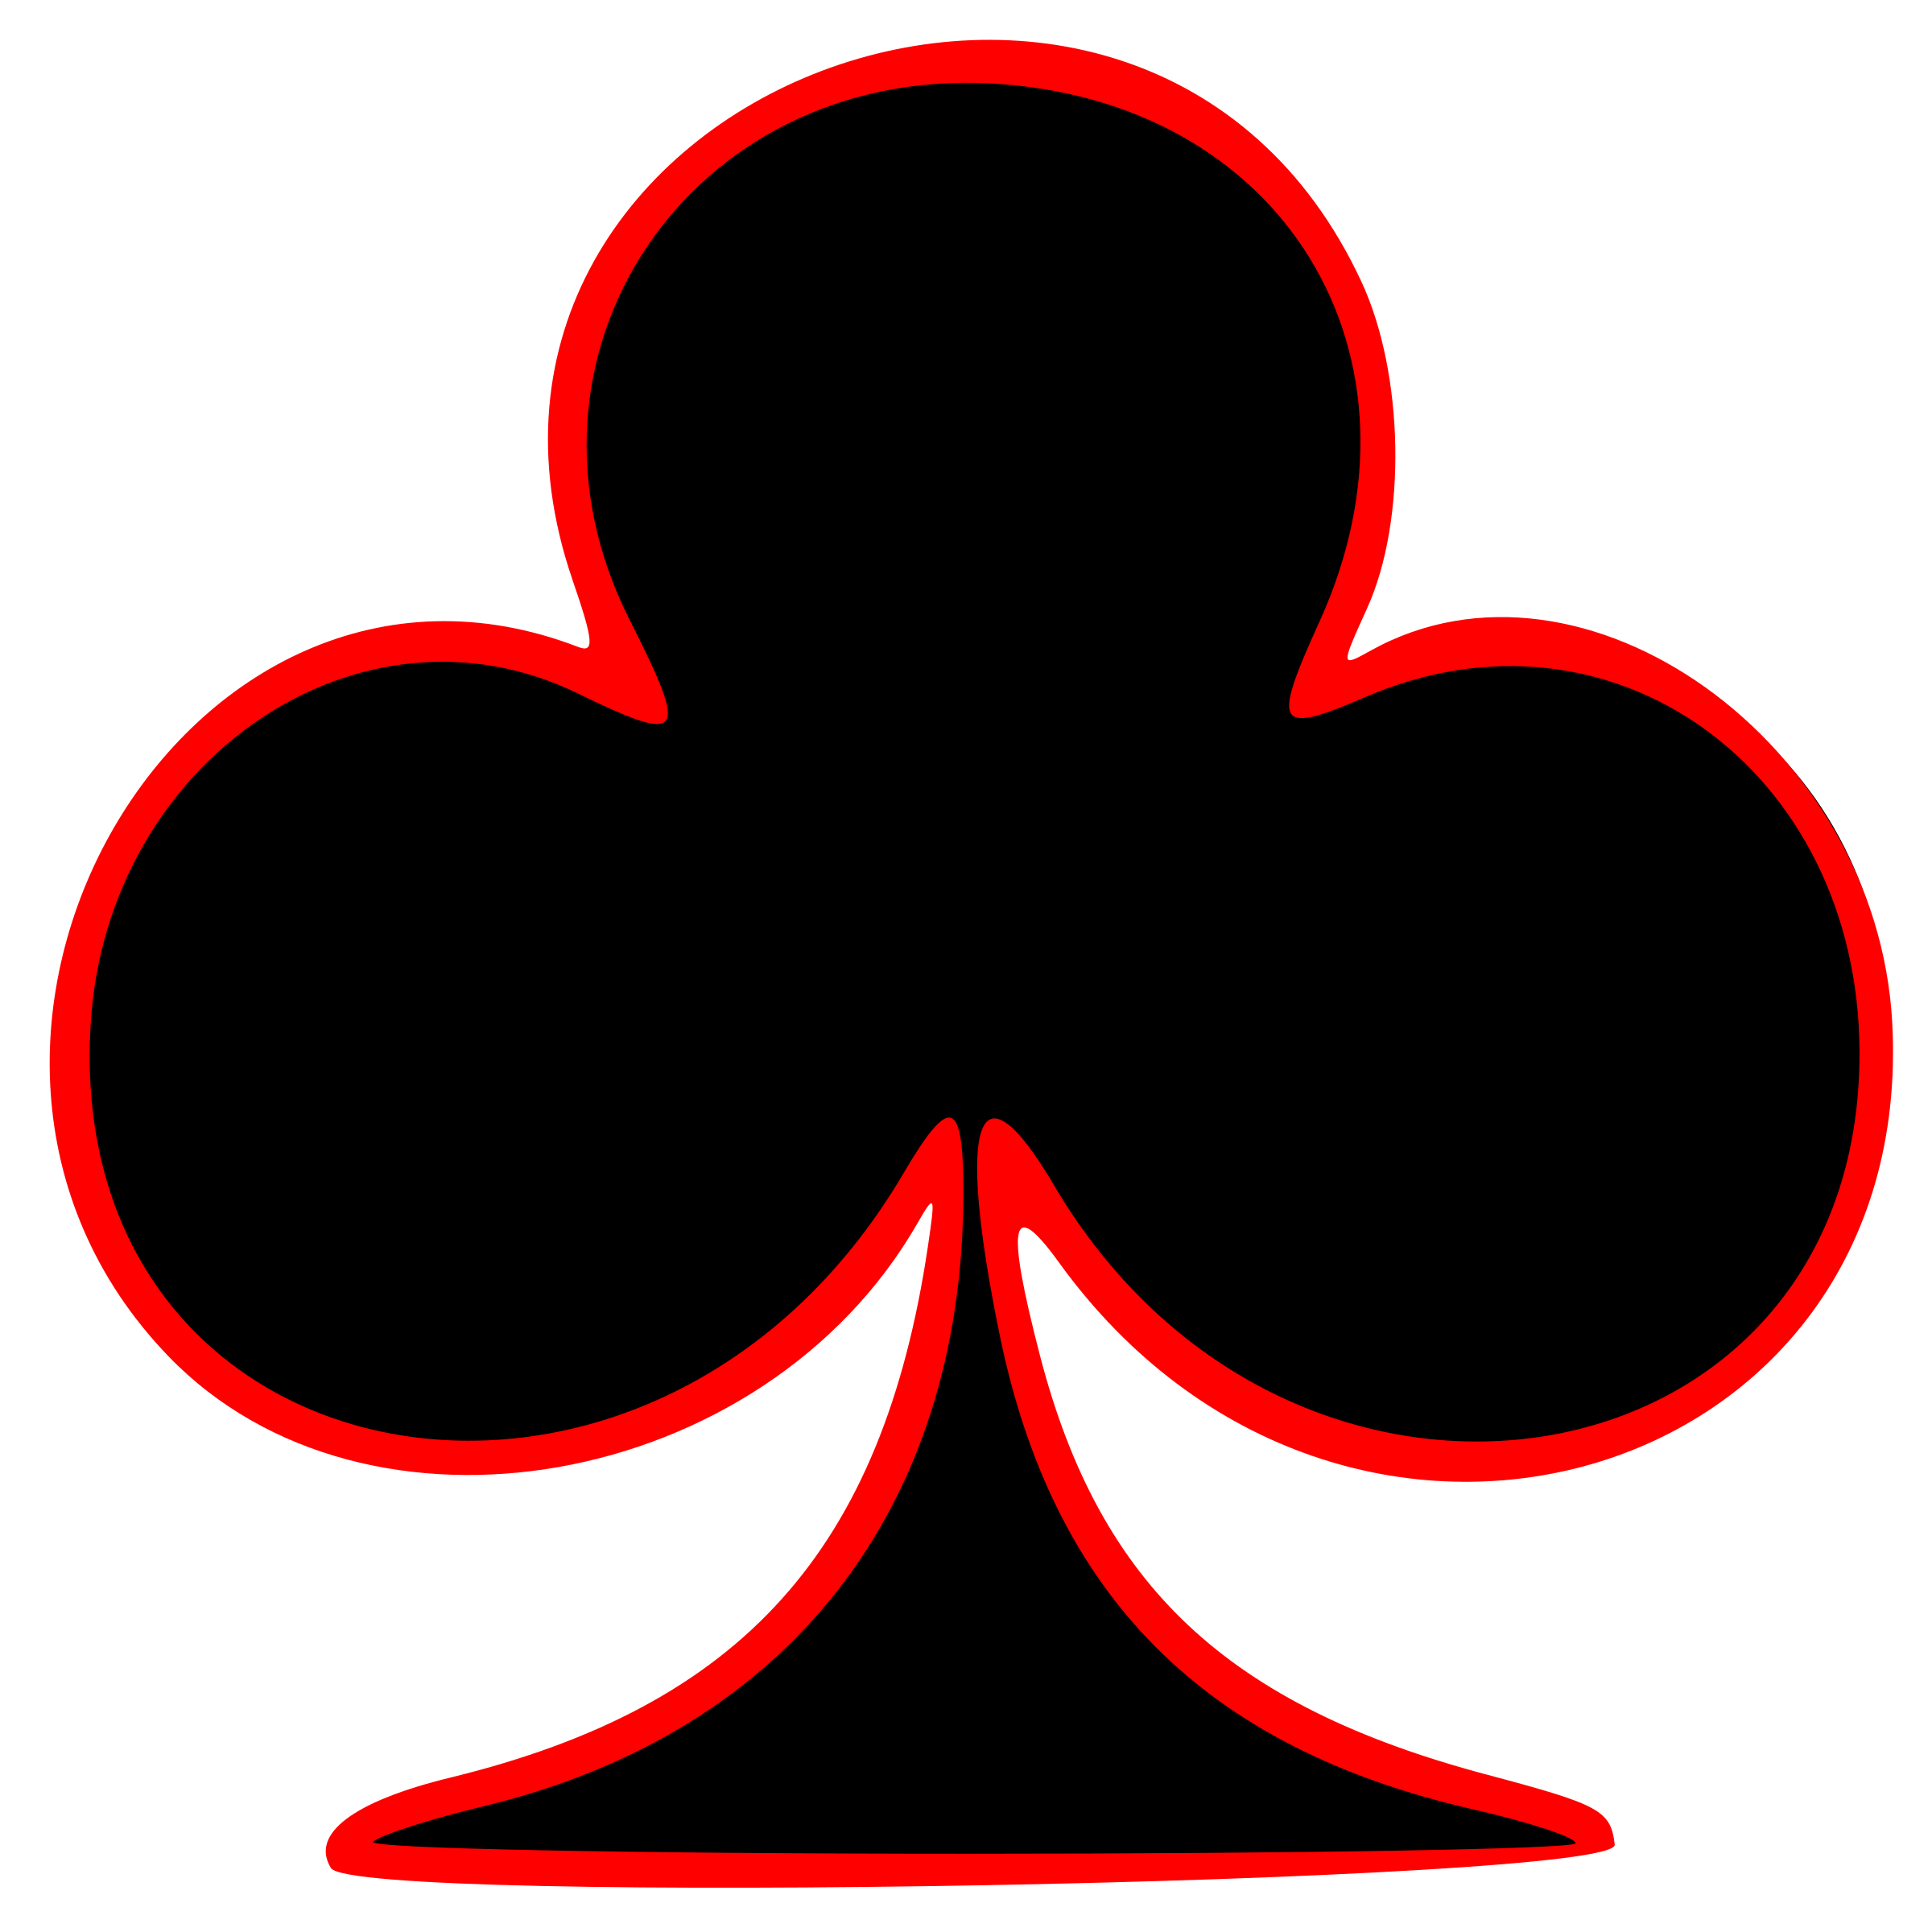 Outlined Club Playing Card Symbol by GR8DAN